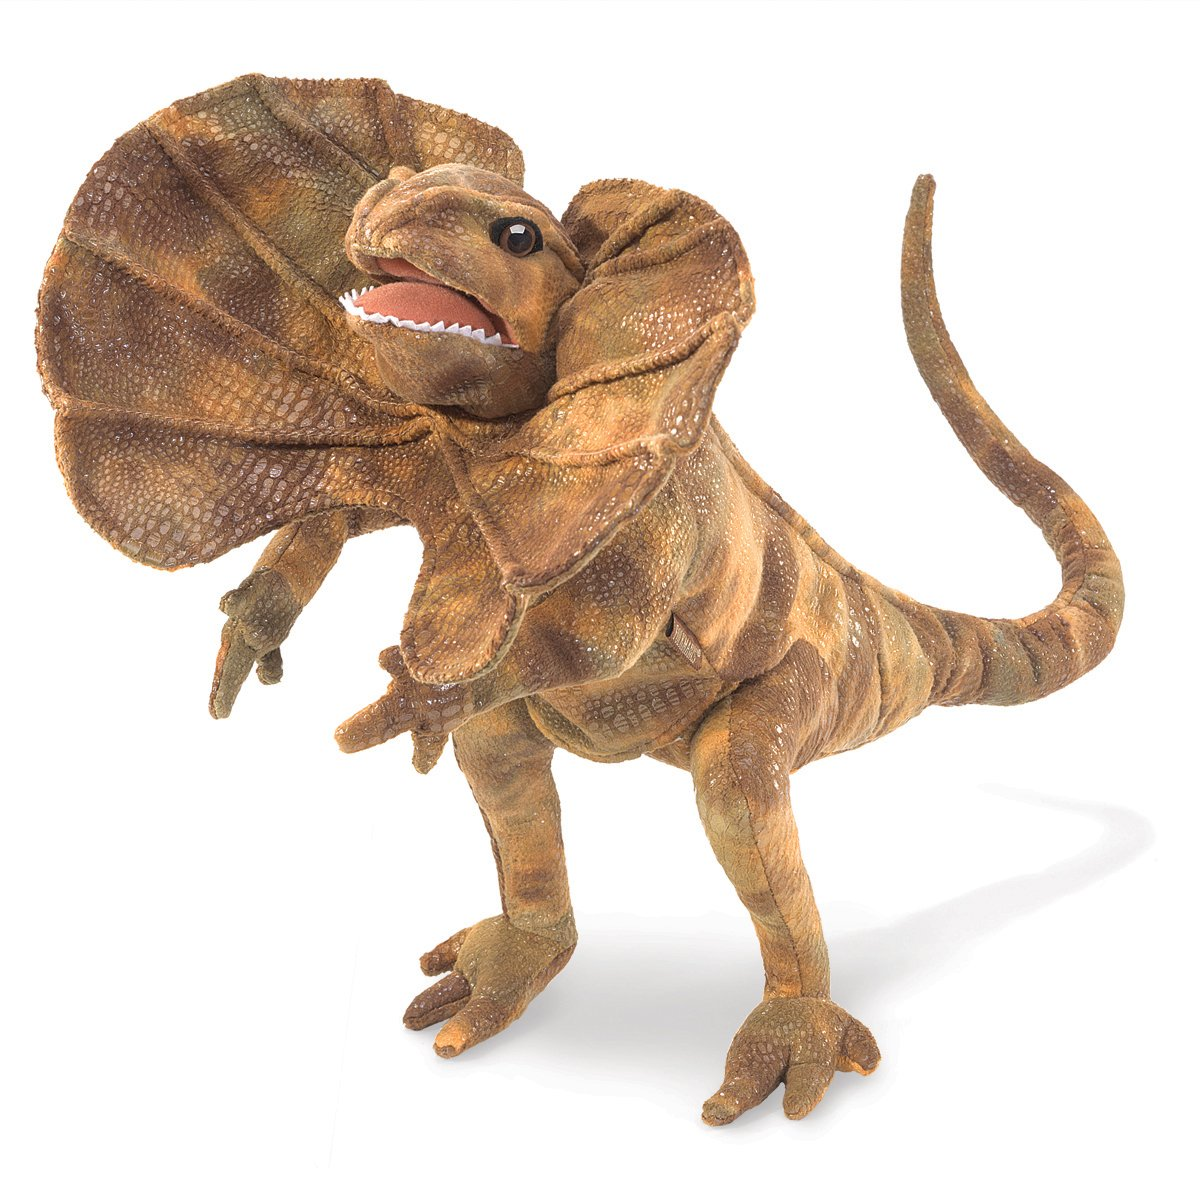 Folkmanis Frilled Lizard Hand Puppet Folkmanis Puppets 3046